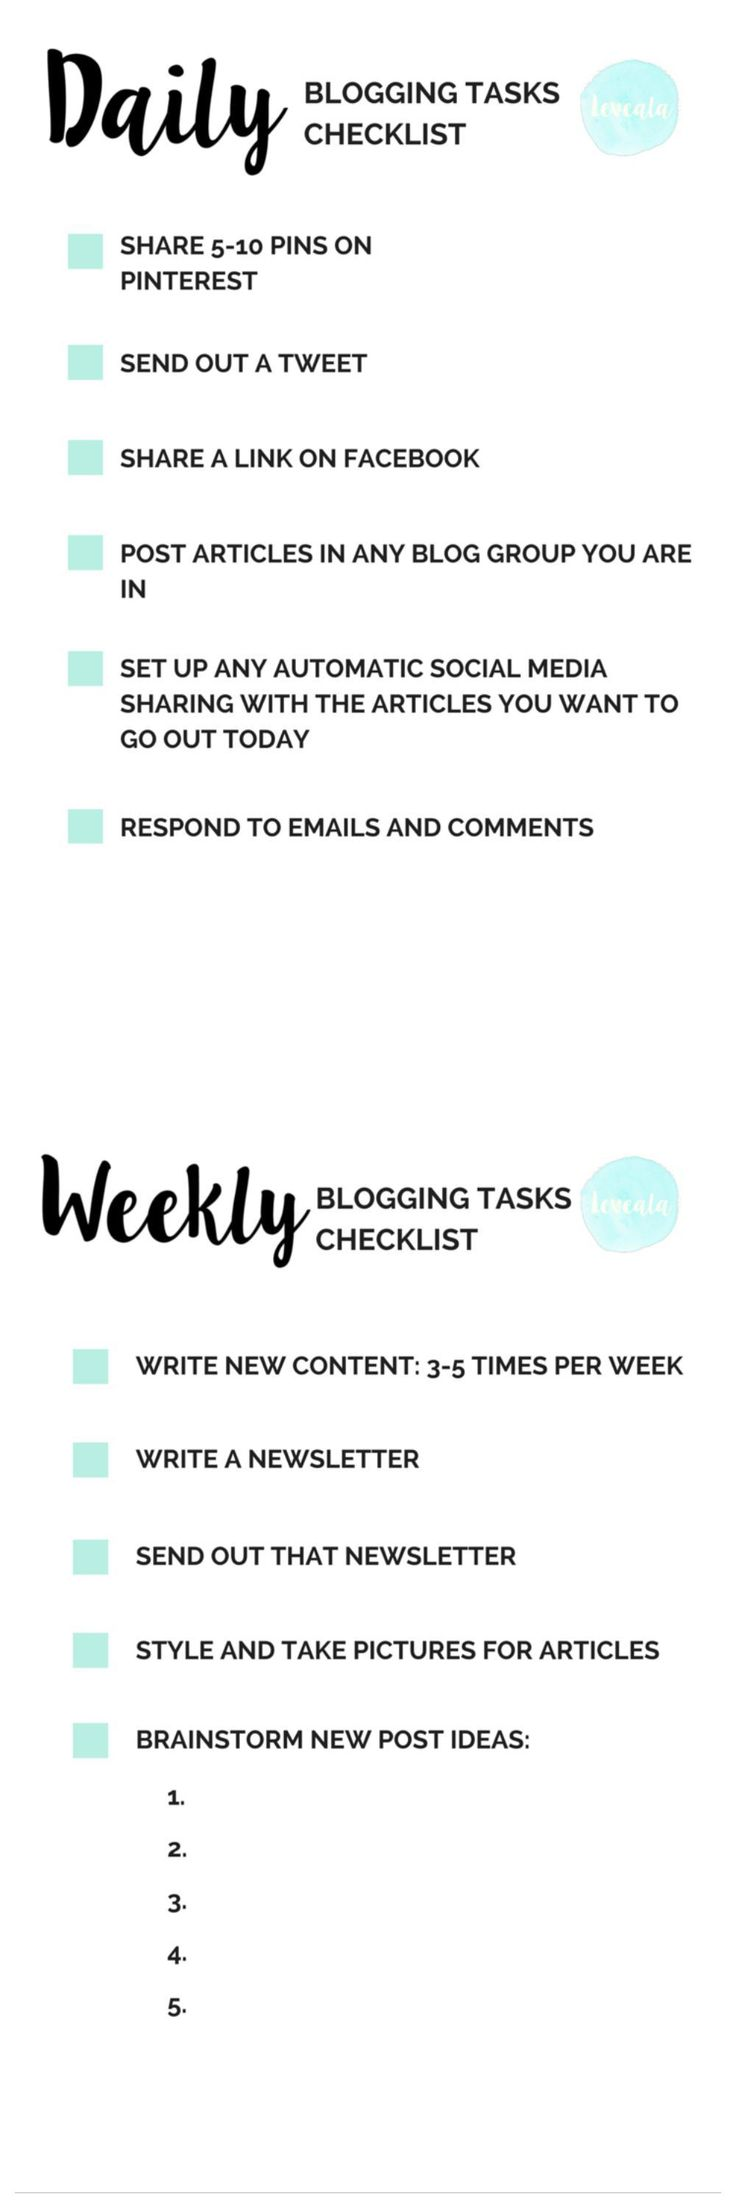 blogging checklist-daily and weekly tasks